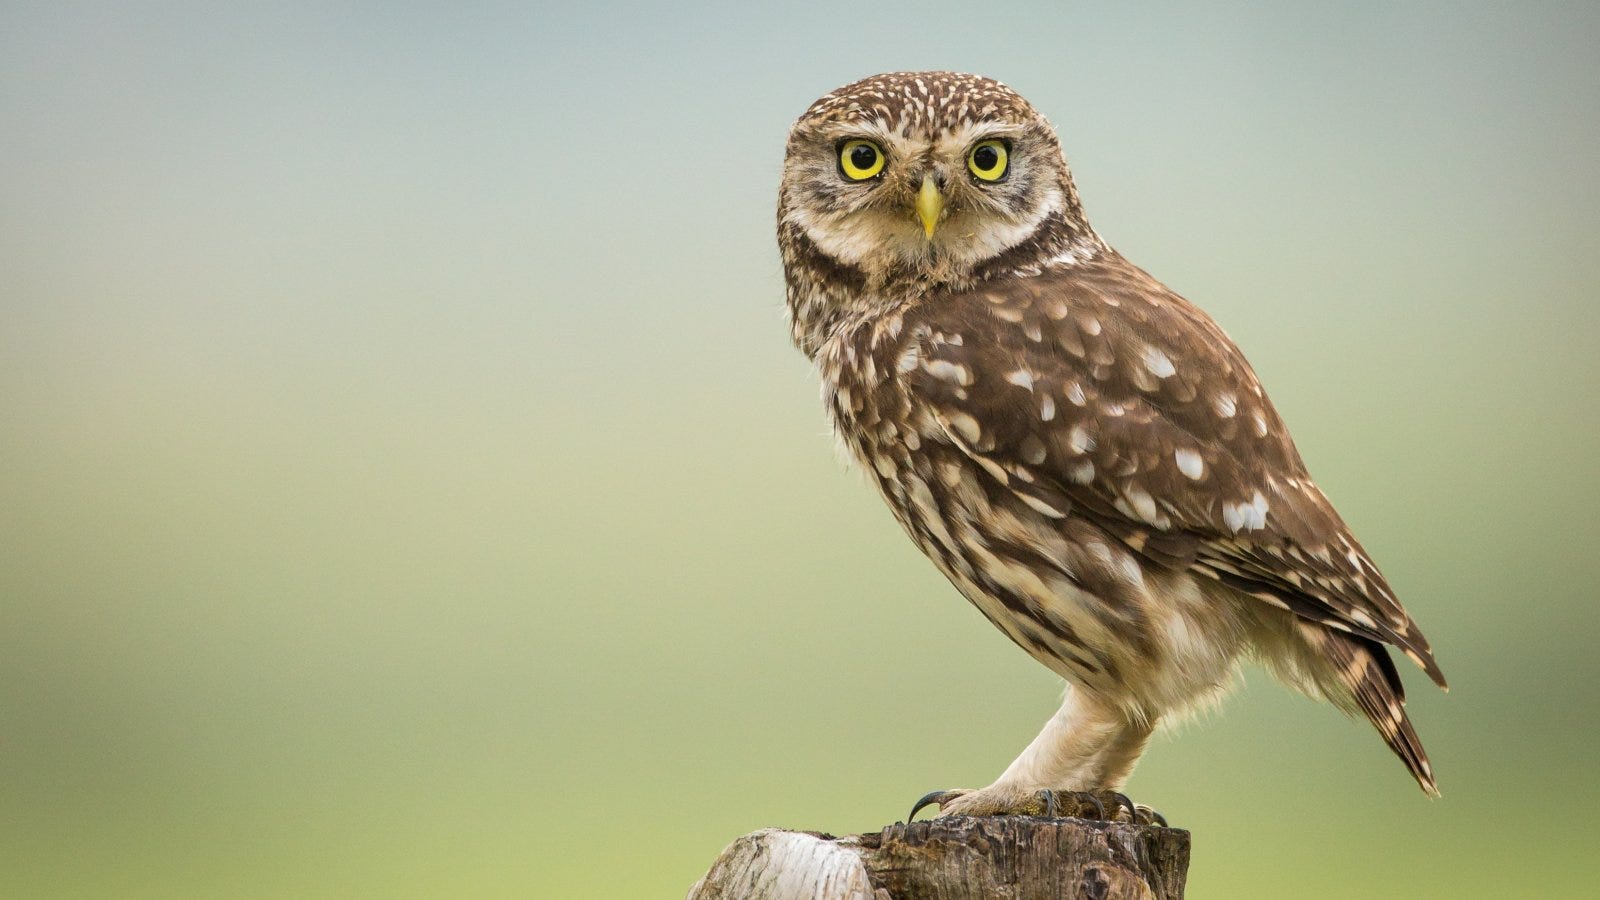 Why Do We Think of Owls as Wise?